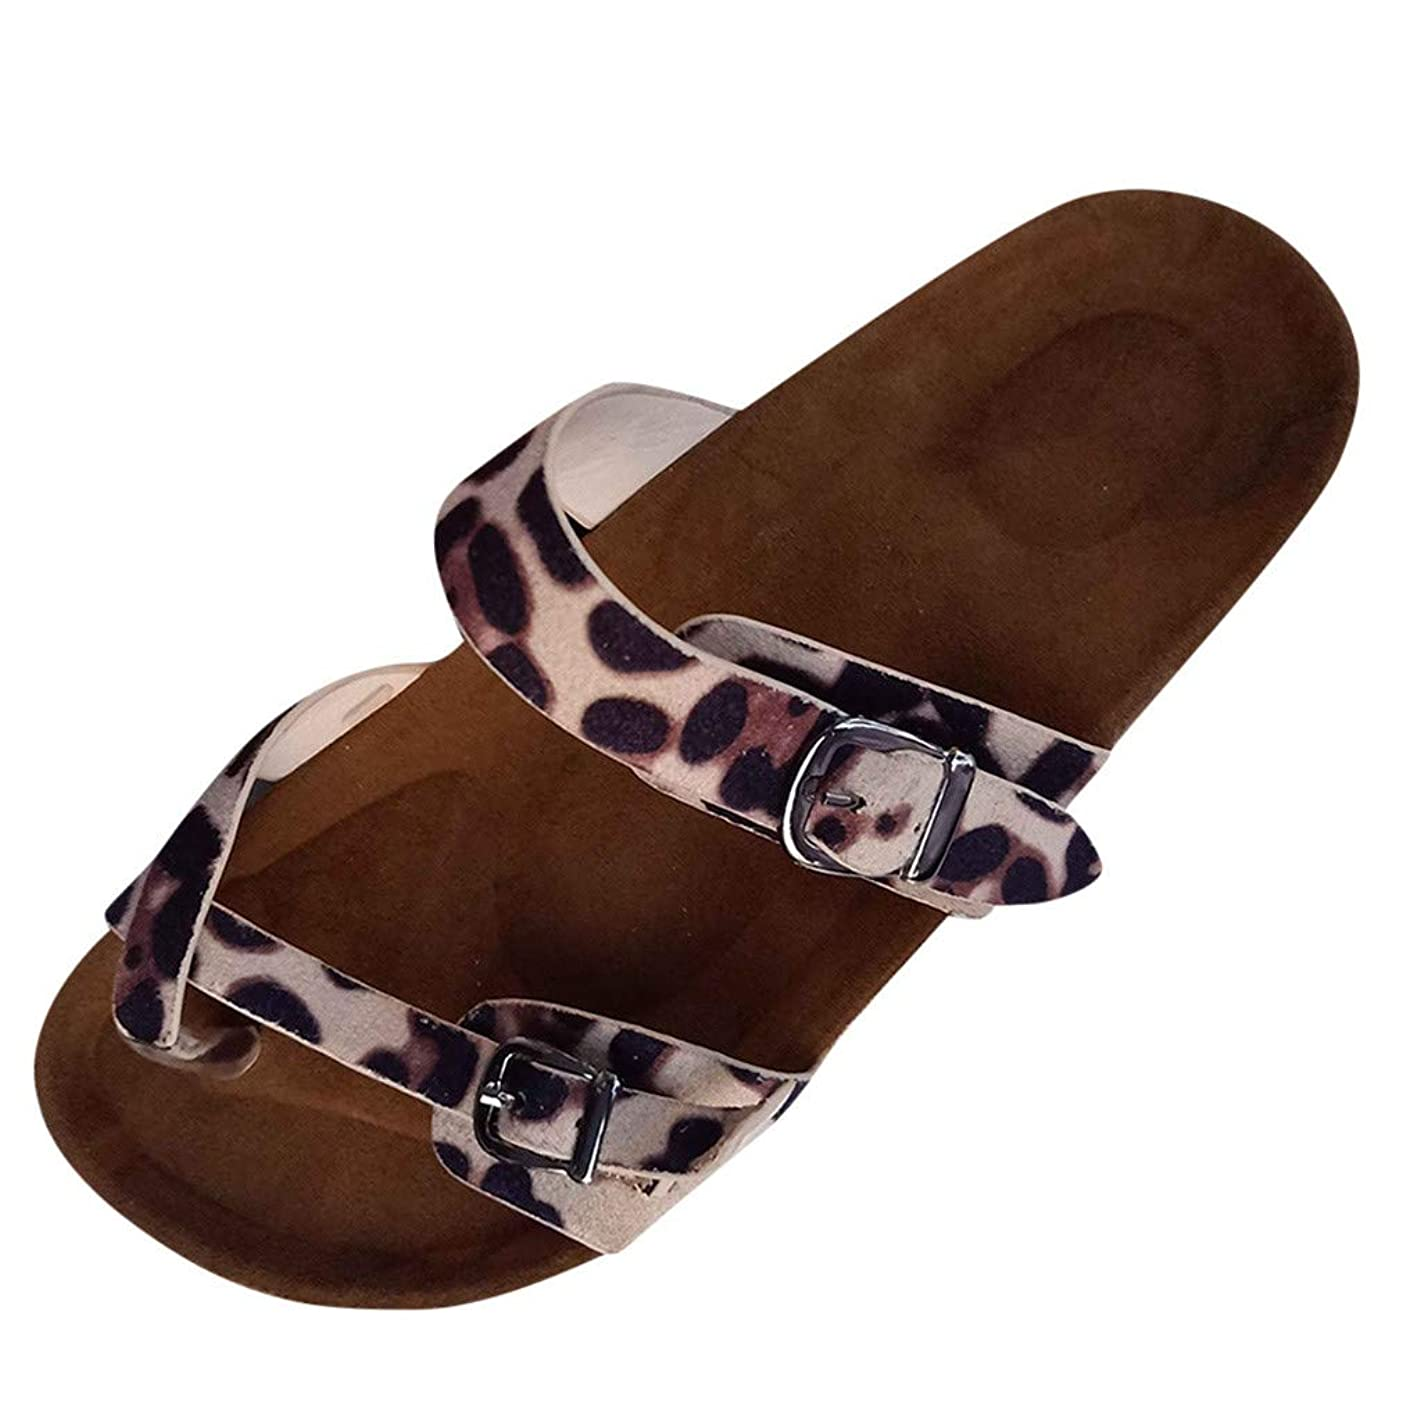 Flip Flops Flat Sandals for Womens,Ladies Roman Slides Open Toe Leopard Thick-Soled Cork Slippers Beach Outdoor Shoes for Summer